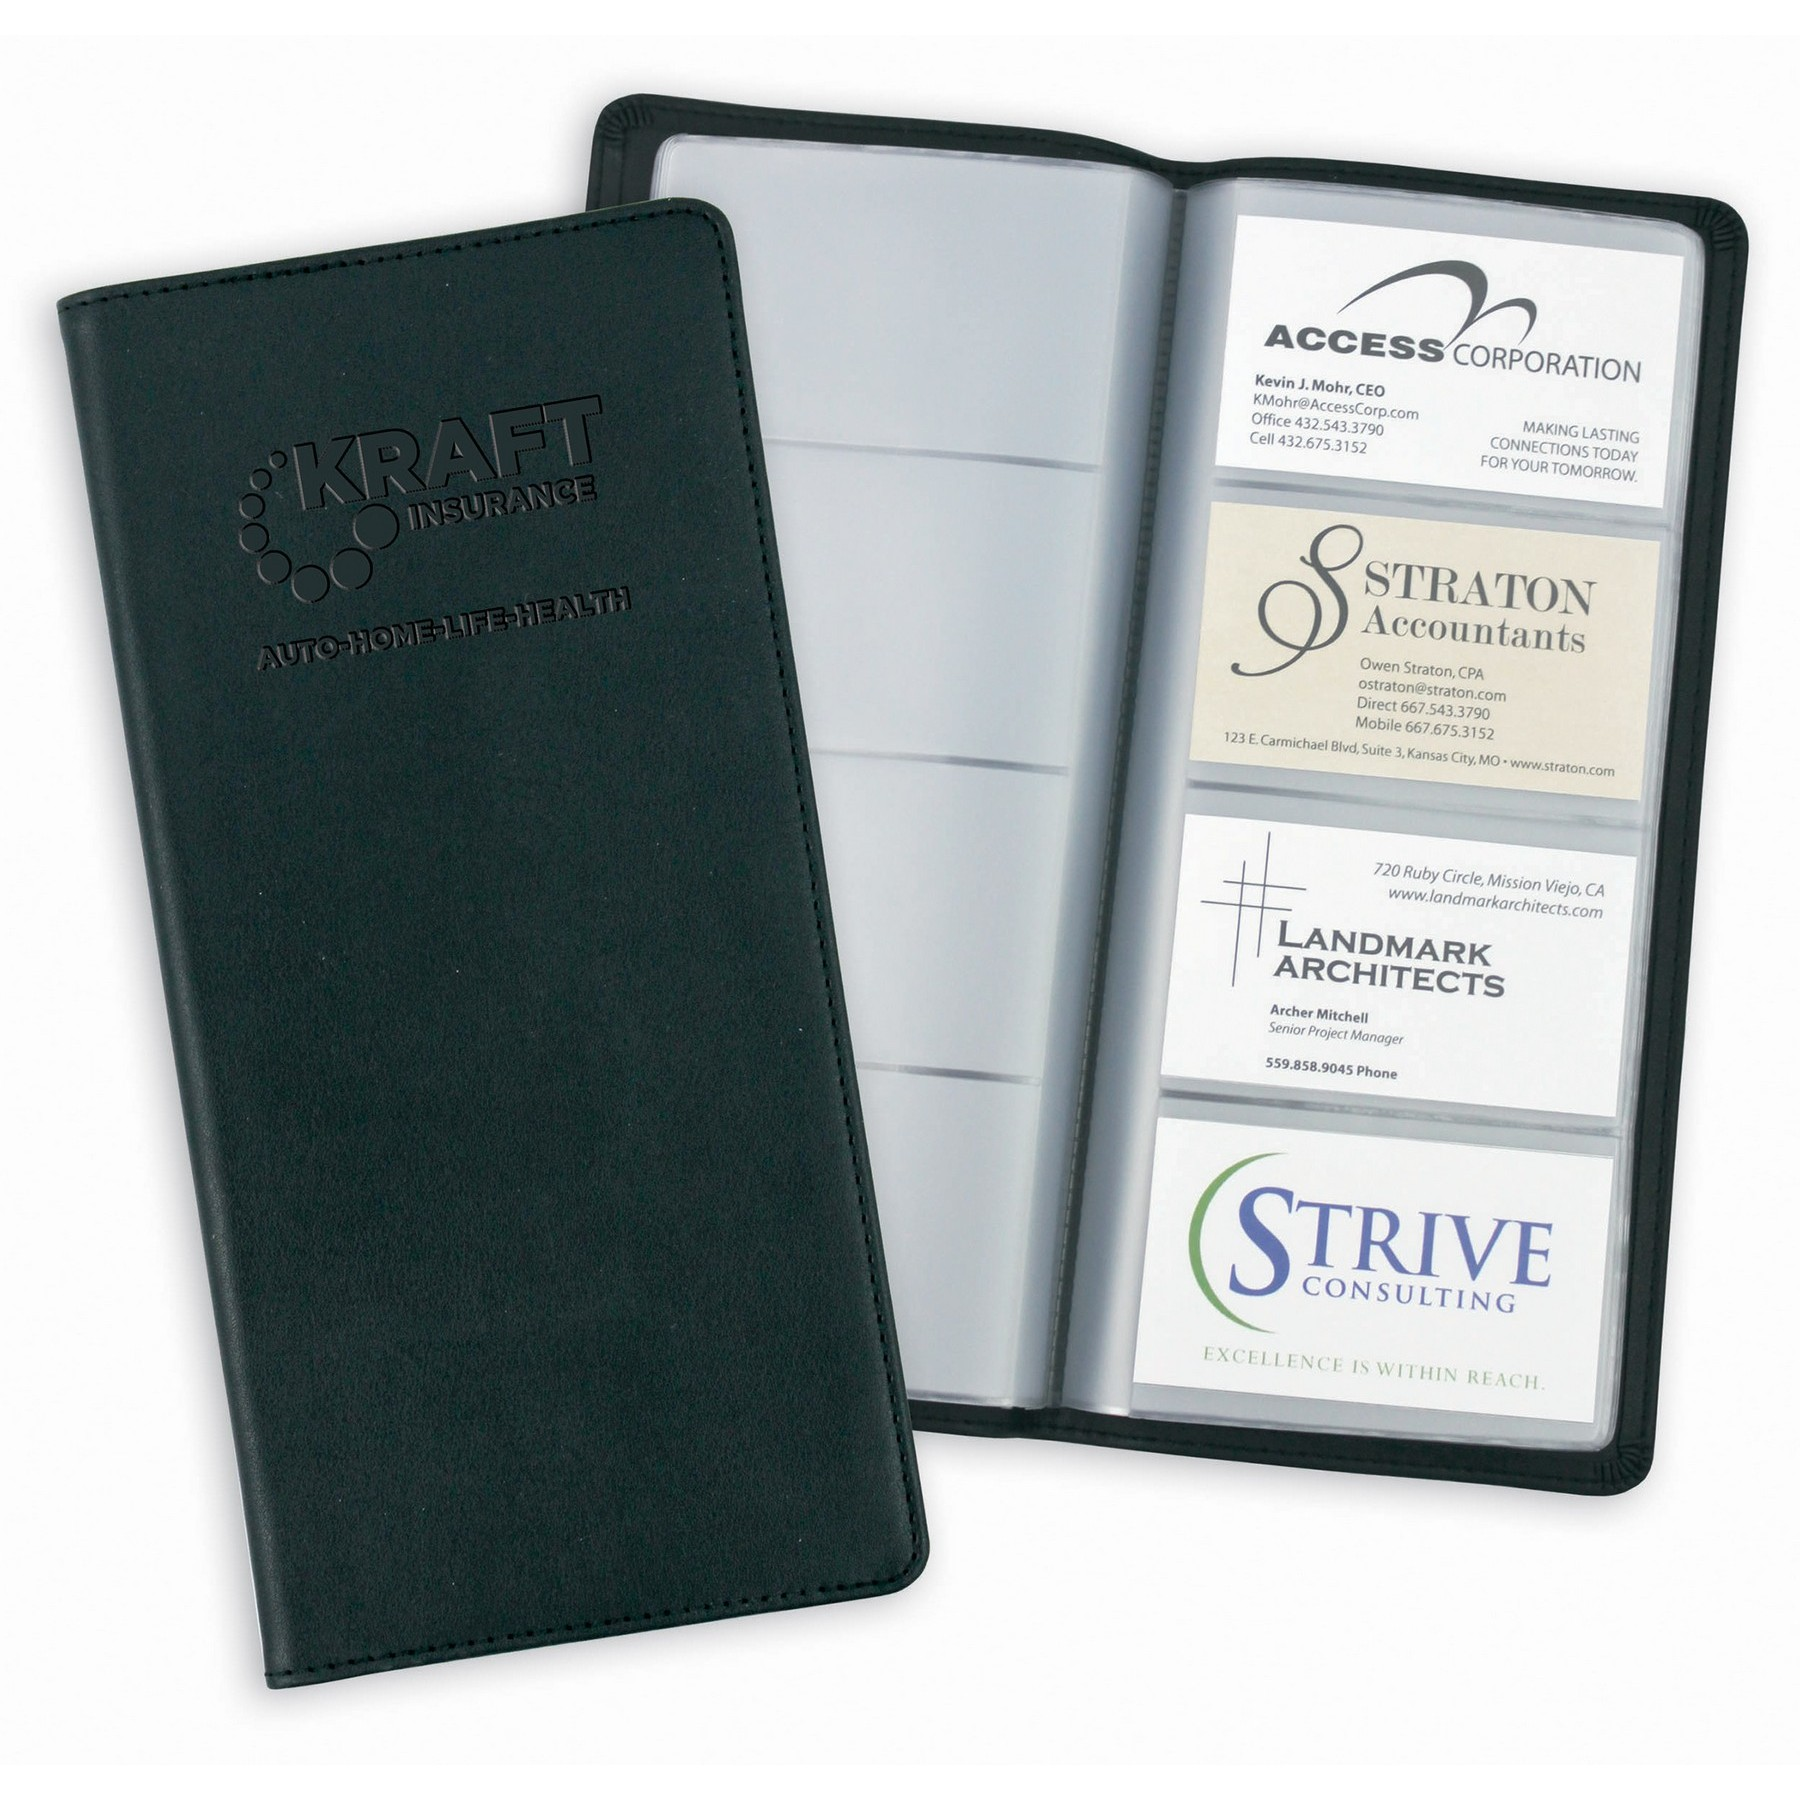 Promotional Office Items | Notepads & Mouse Pad Printing